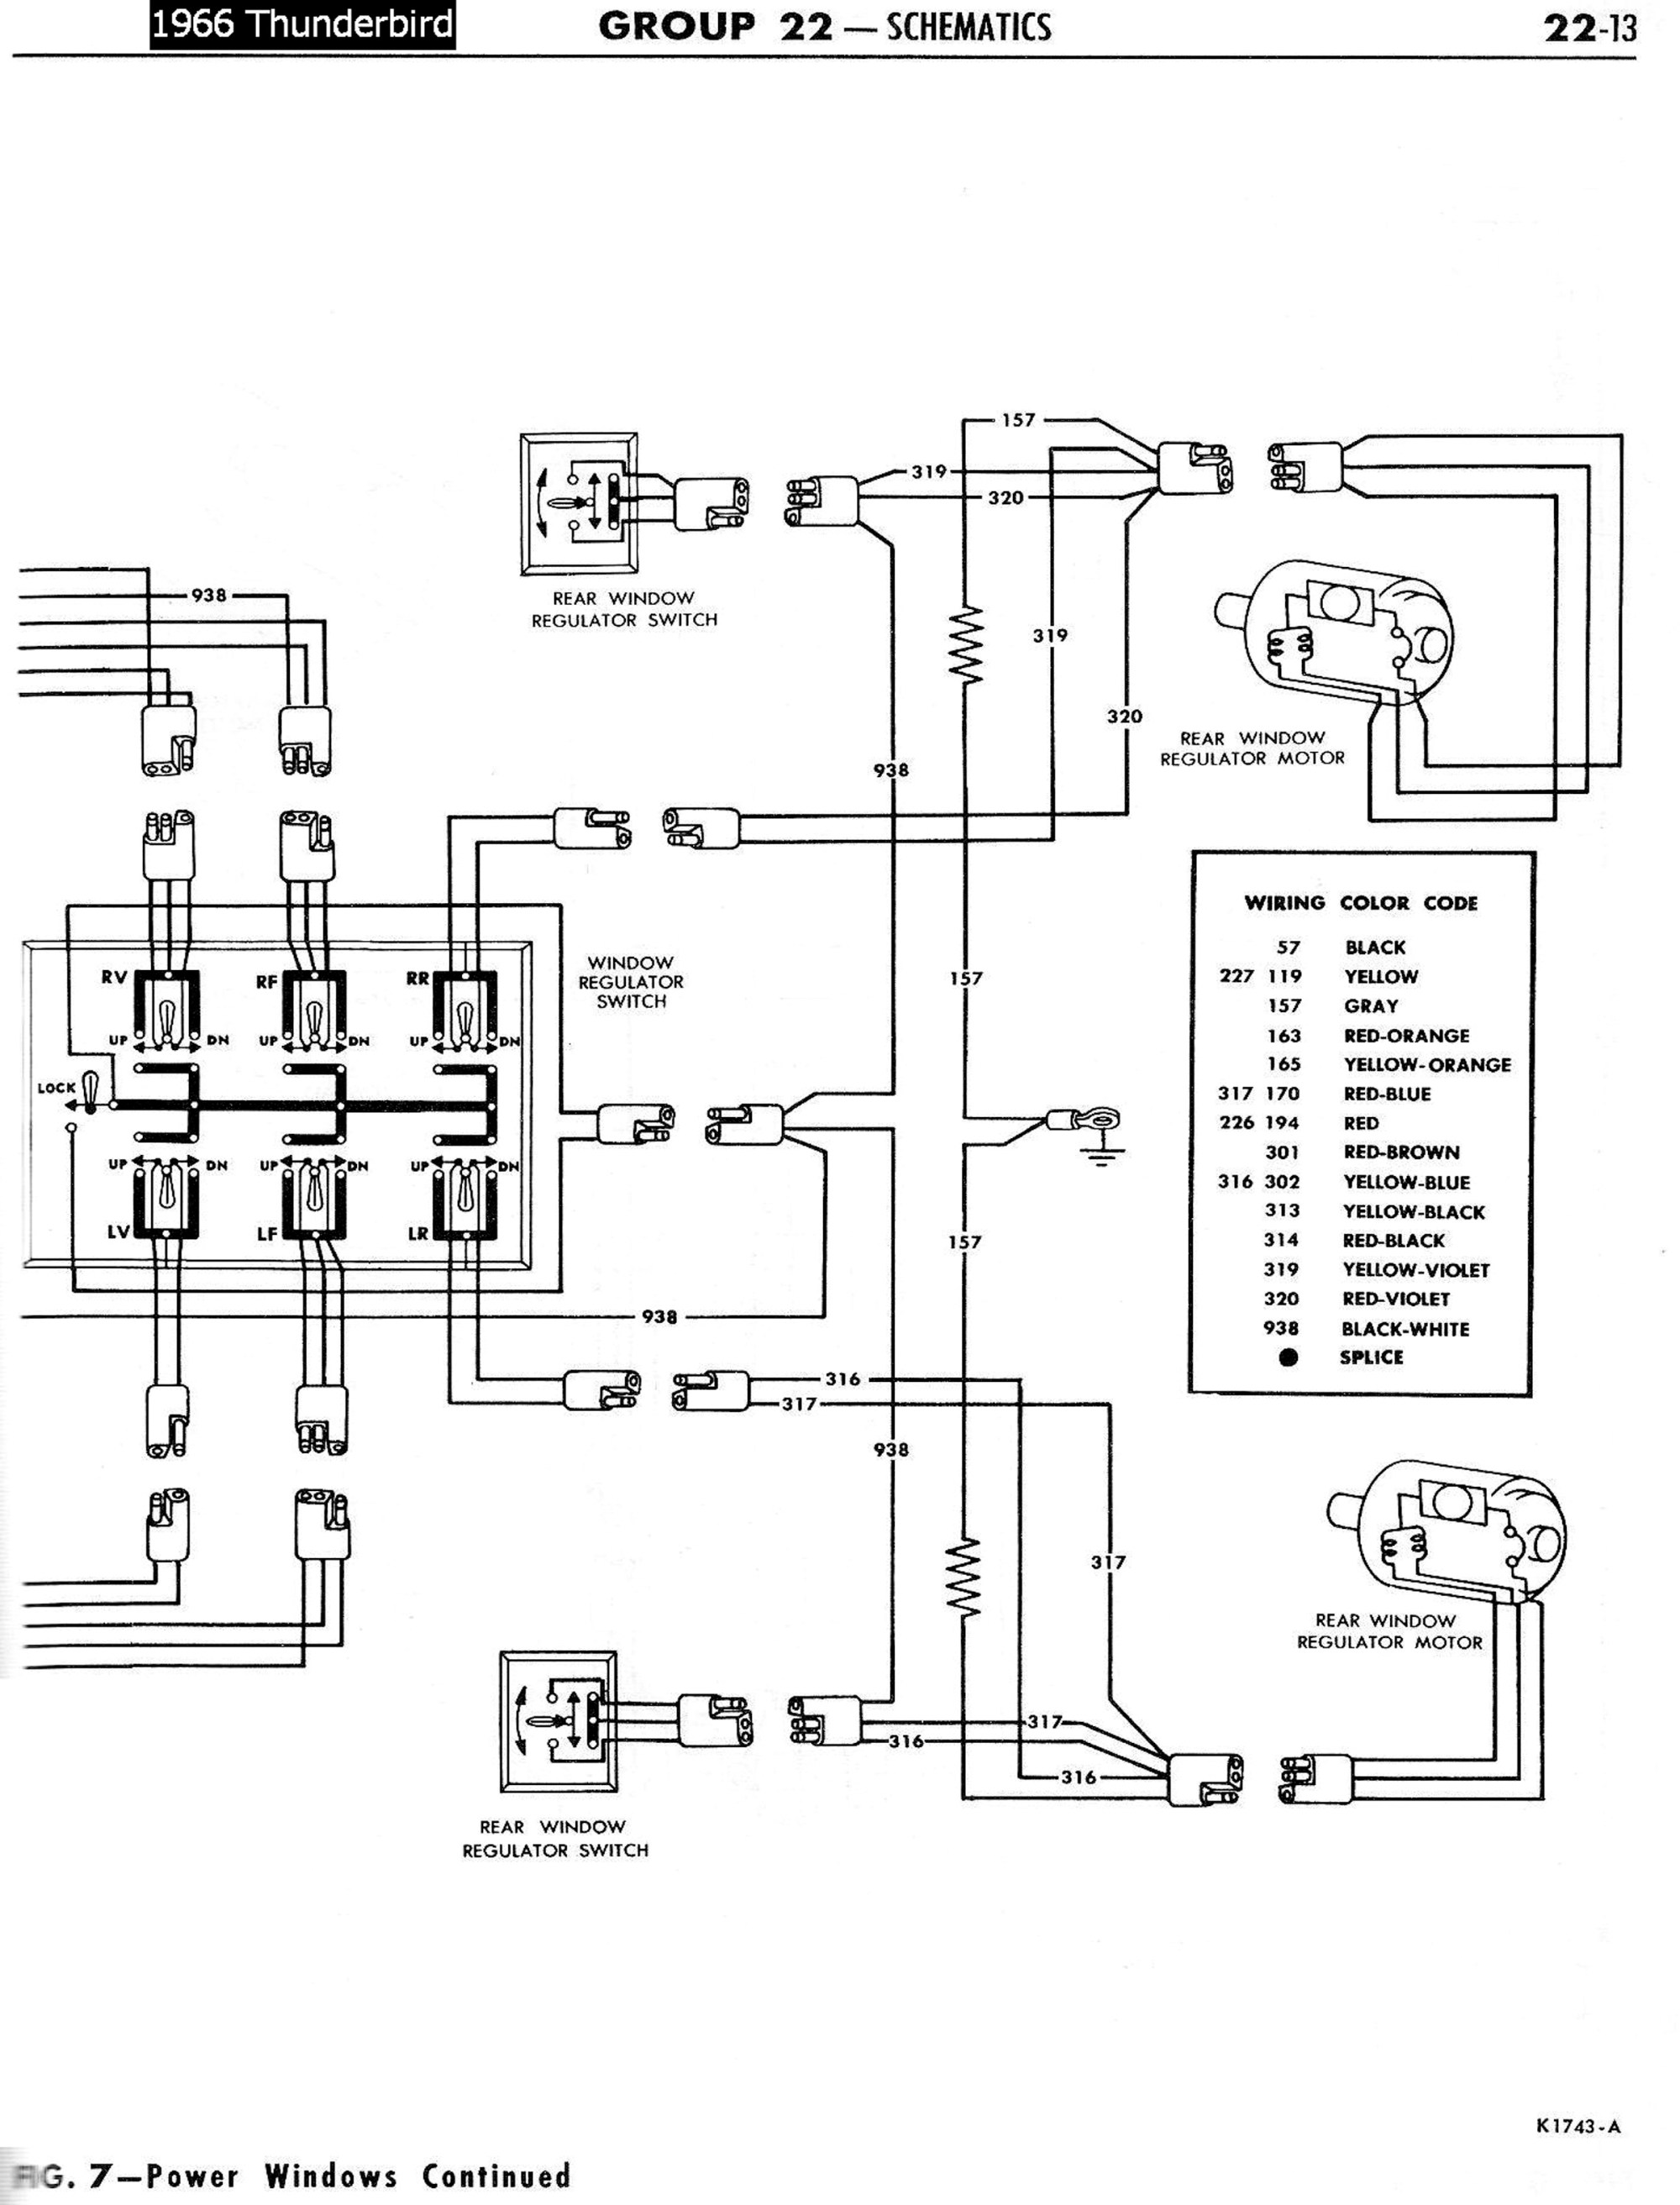 hight resolution of light switch wiring diagram 1957 thunderbird wiring diagram database 1957 ford thunderbird wiring diagram